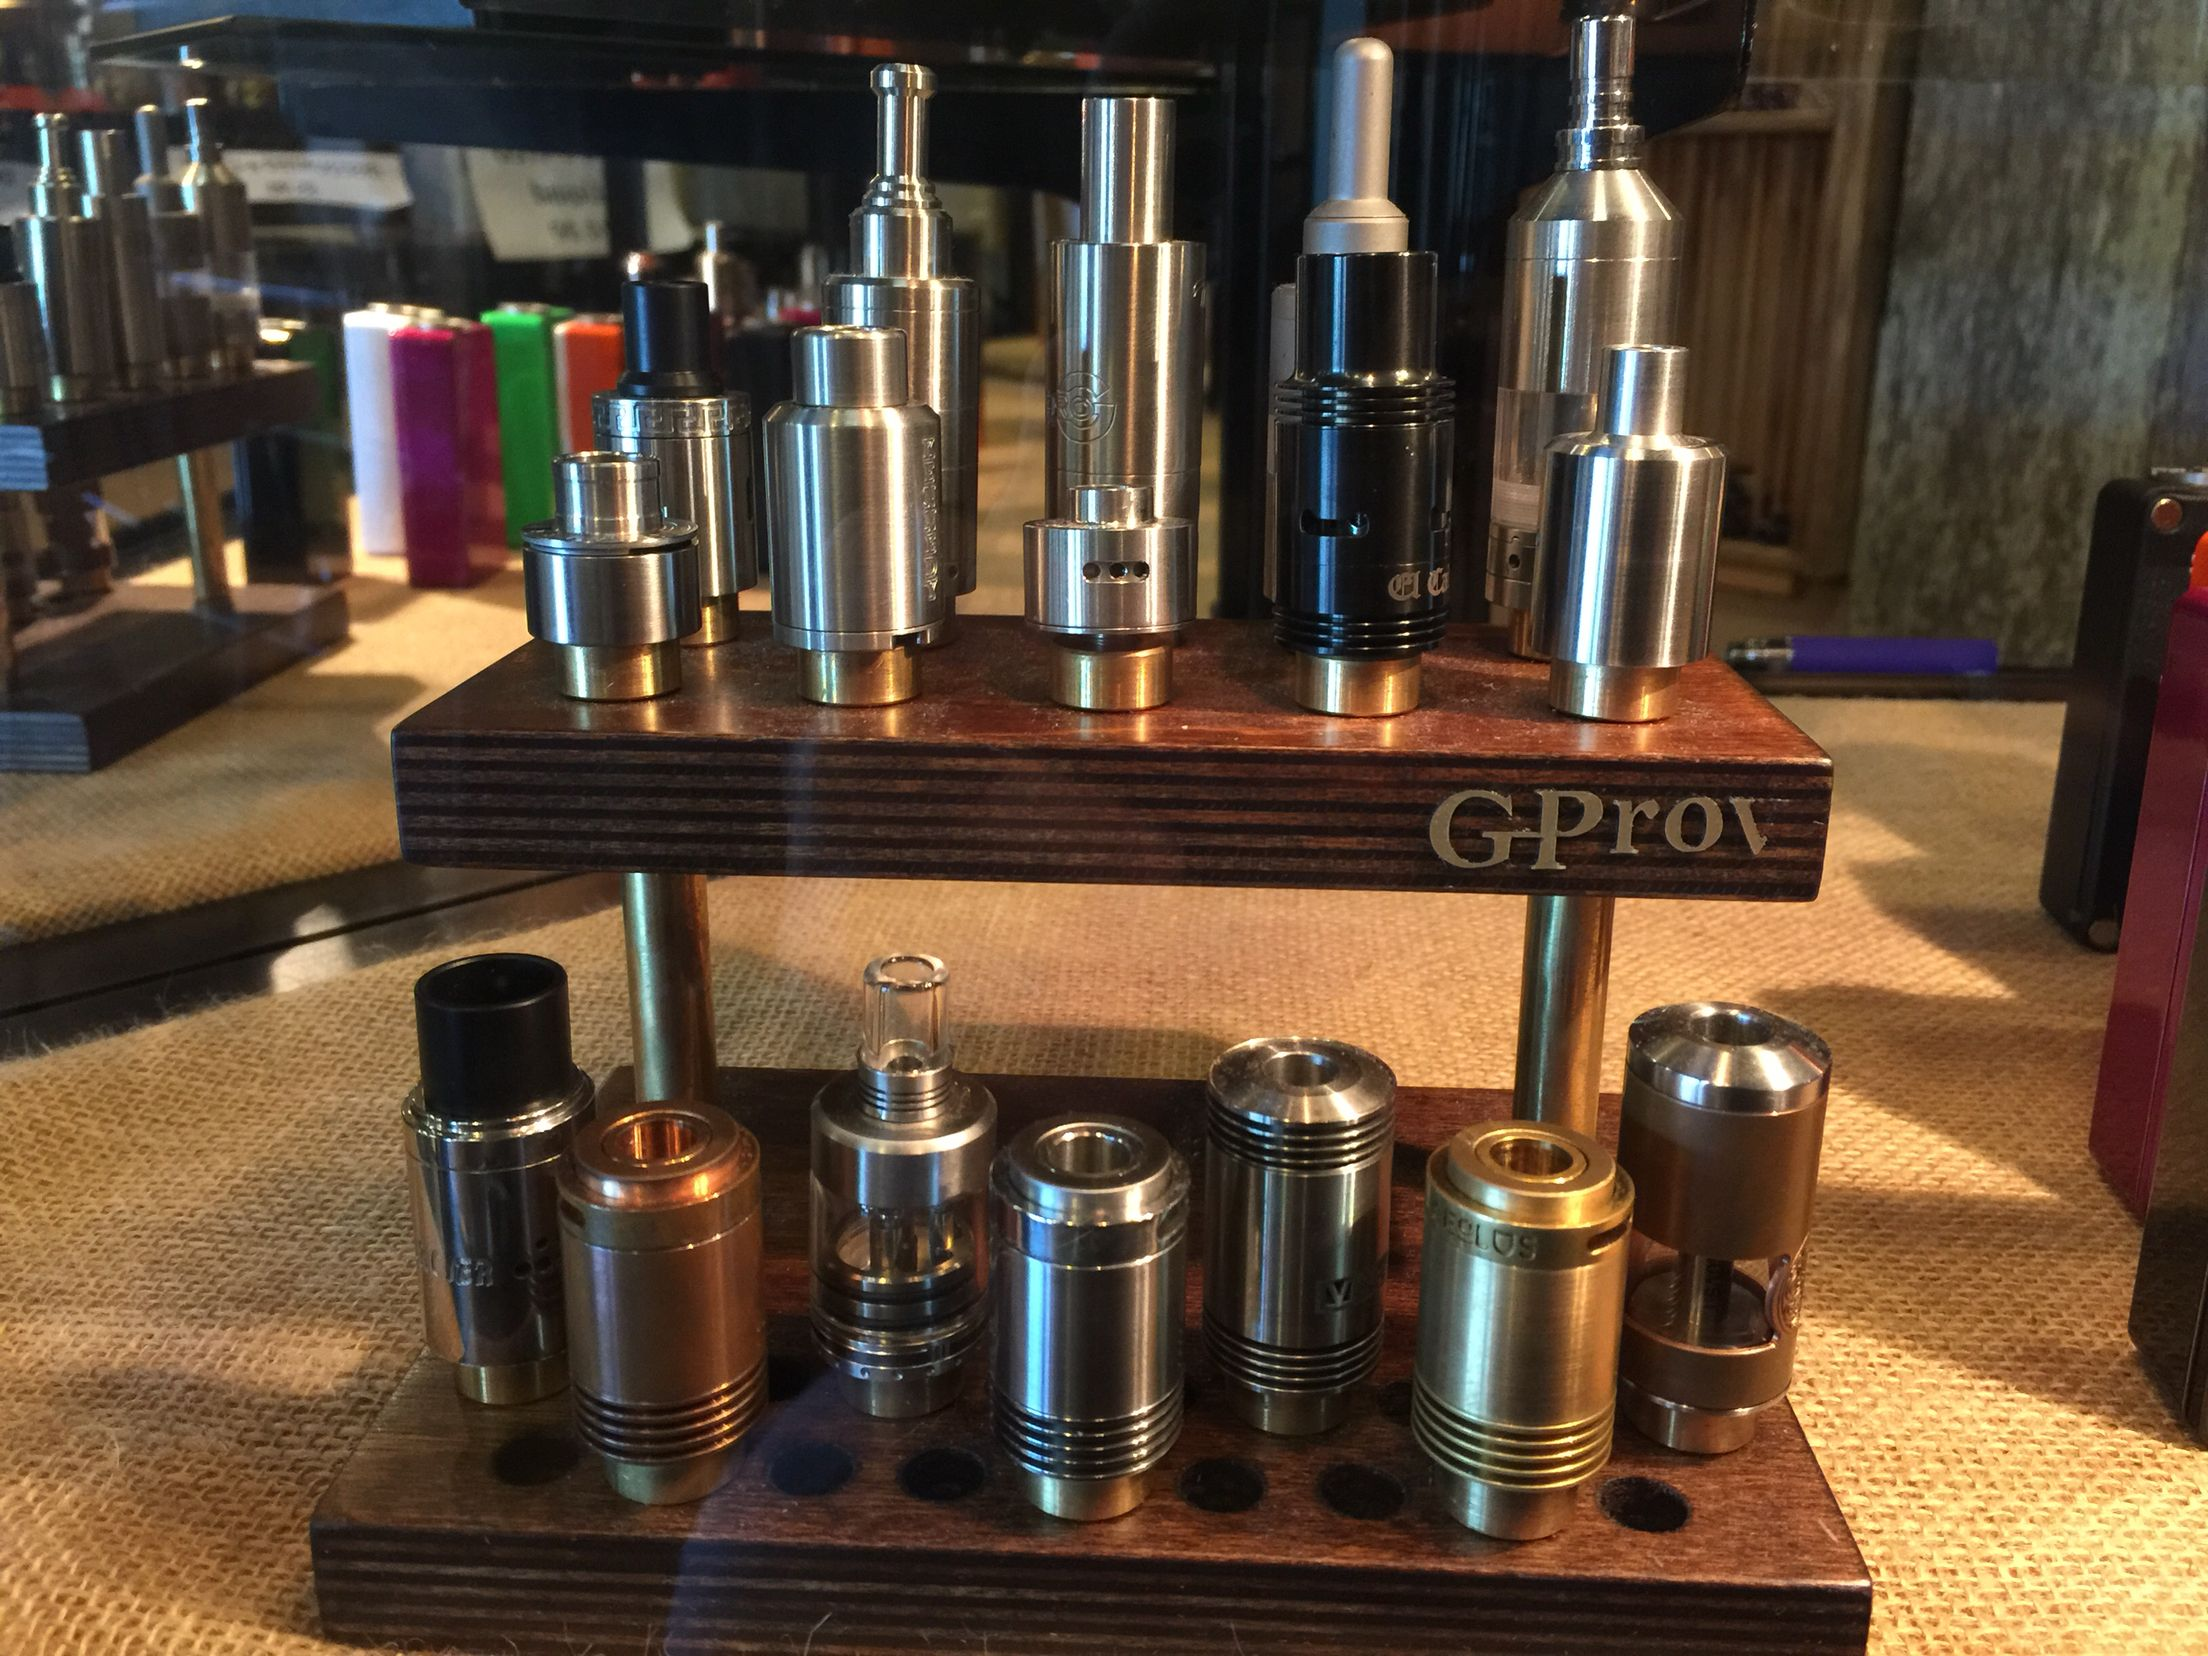 AUTHENTIC RDA'S!   Whether you are looking for Genny style, top air flow, rebuildable tanks, flavor atty's or the latest and greatest, you have found quality and only at...  Knoxville's & Sevier's Finest!  #knoxvillevapor #knoxvillevaporpigeonforge #knoxvillesfinest #seviersfinest #authentic